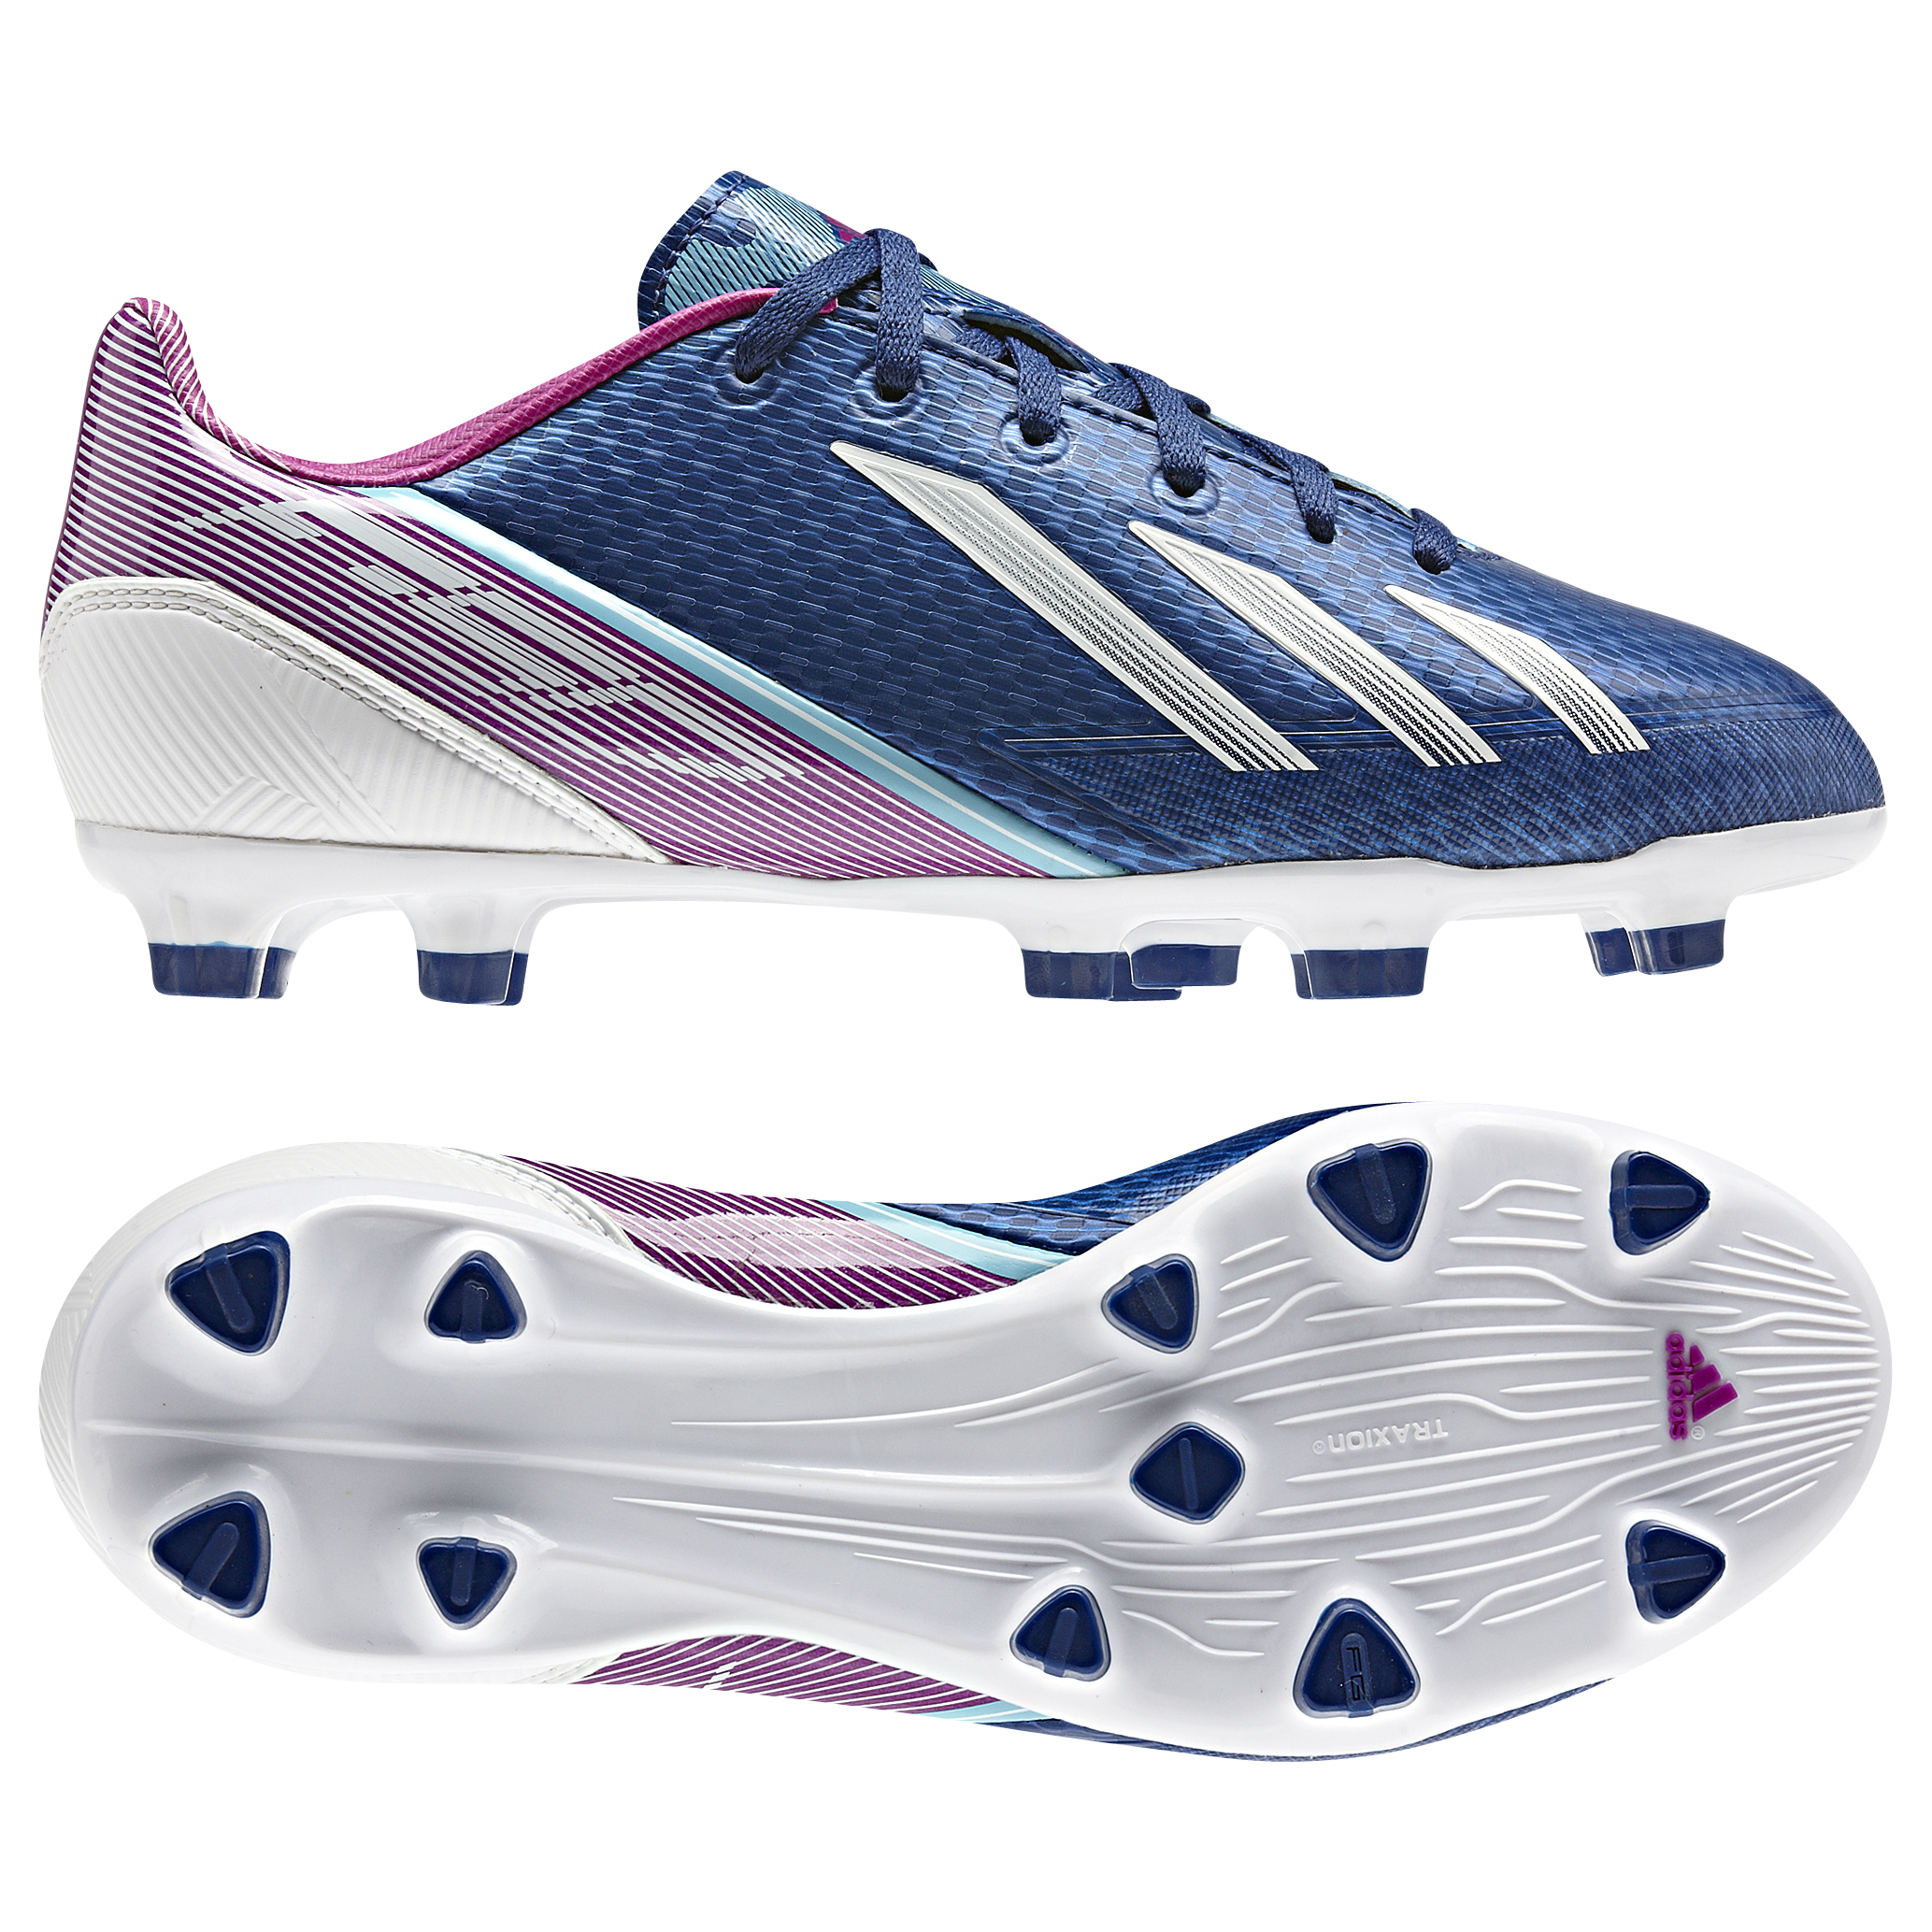 adidas AdiZero F30 TRX Firm Ground Football Boots - Dark Blue/Running White/Vivid Pink - Kids